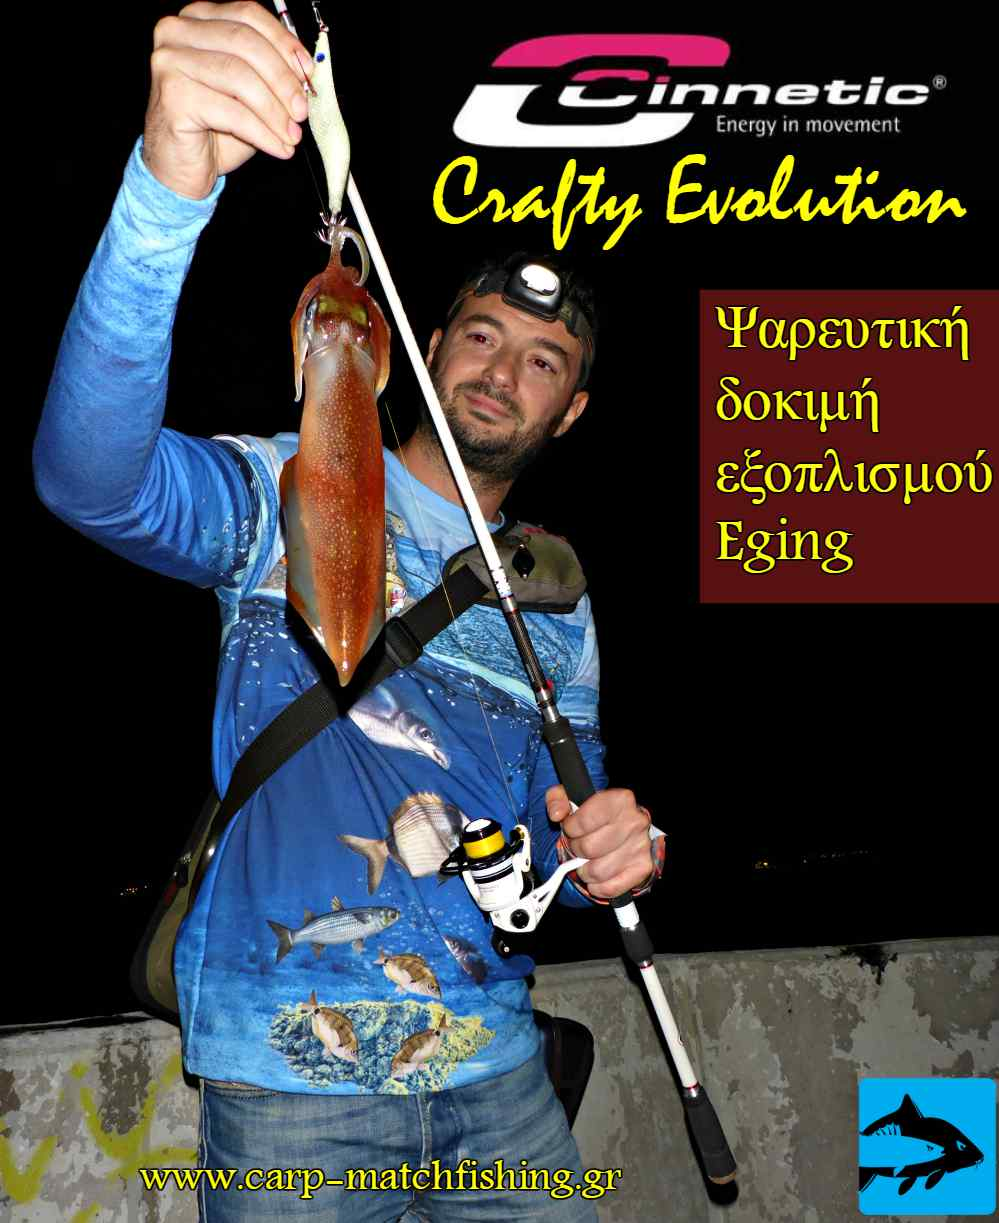 psareutiki-dokimi-eging-kalami-cinnetic-crafty-evolution-carpmatchfishing